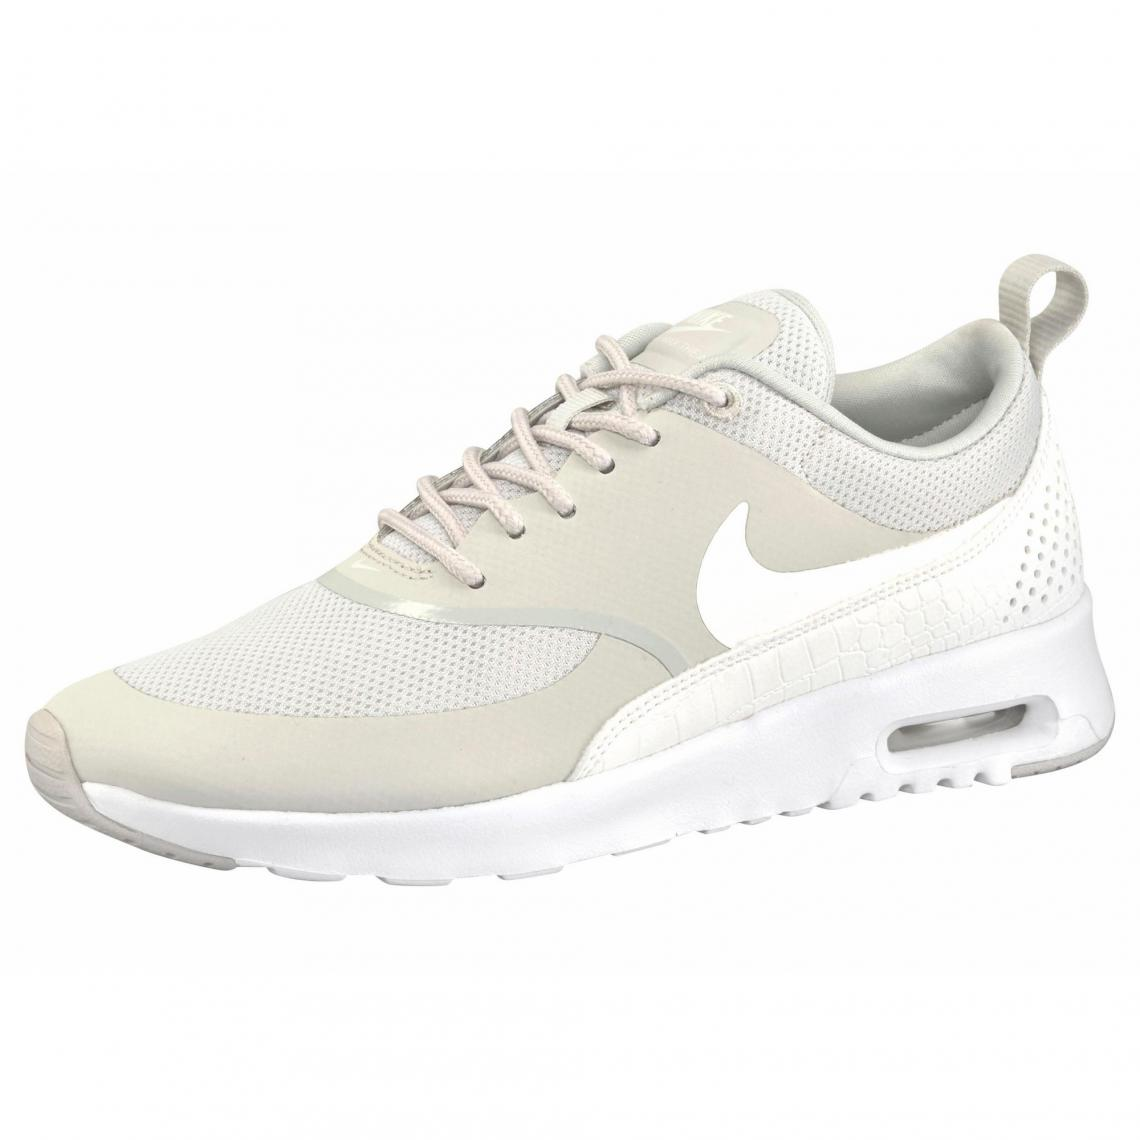 Noir3 Suisses Femme Chaussures Thea Max Air Nike De Running 5Lc43AjqSR